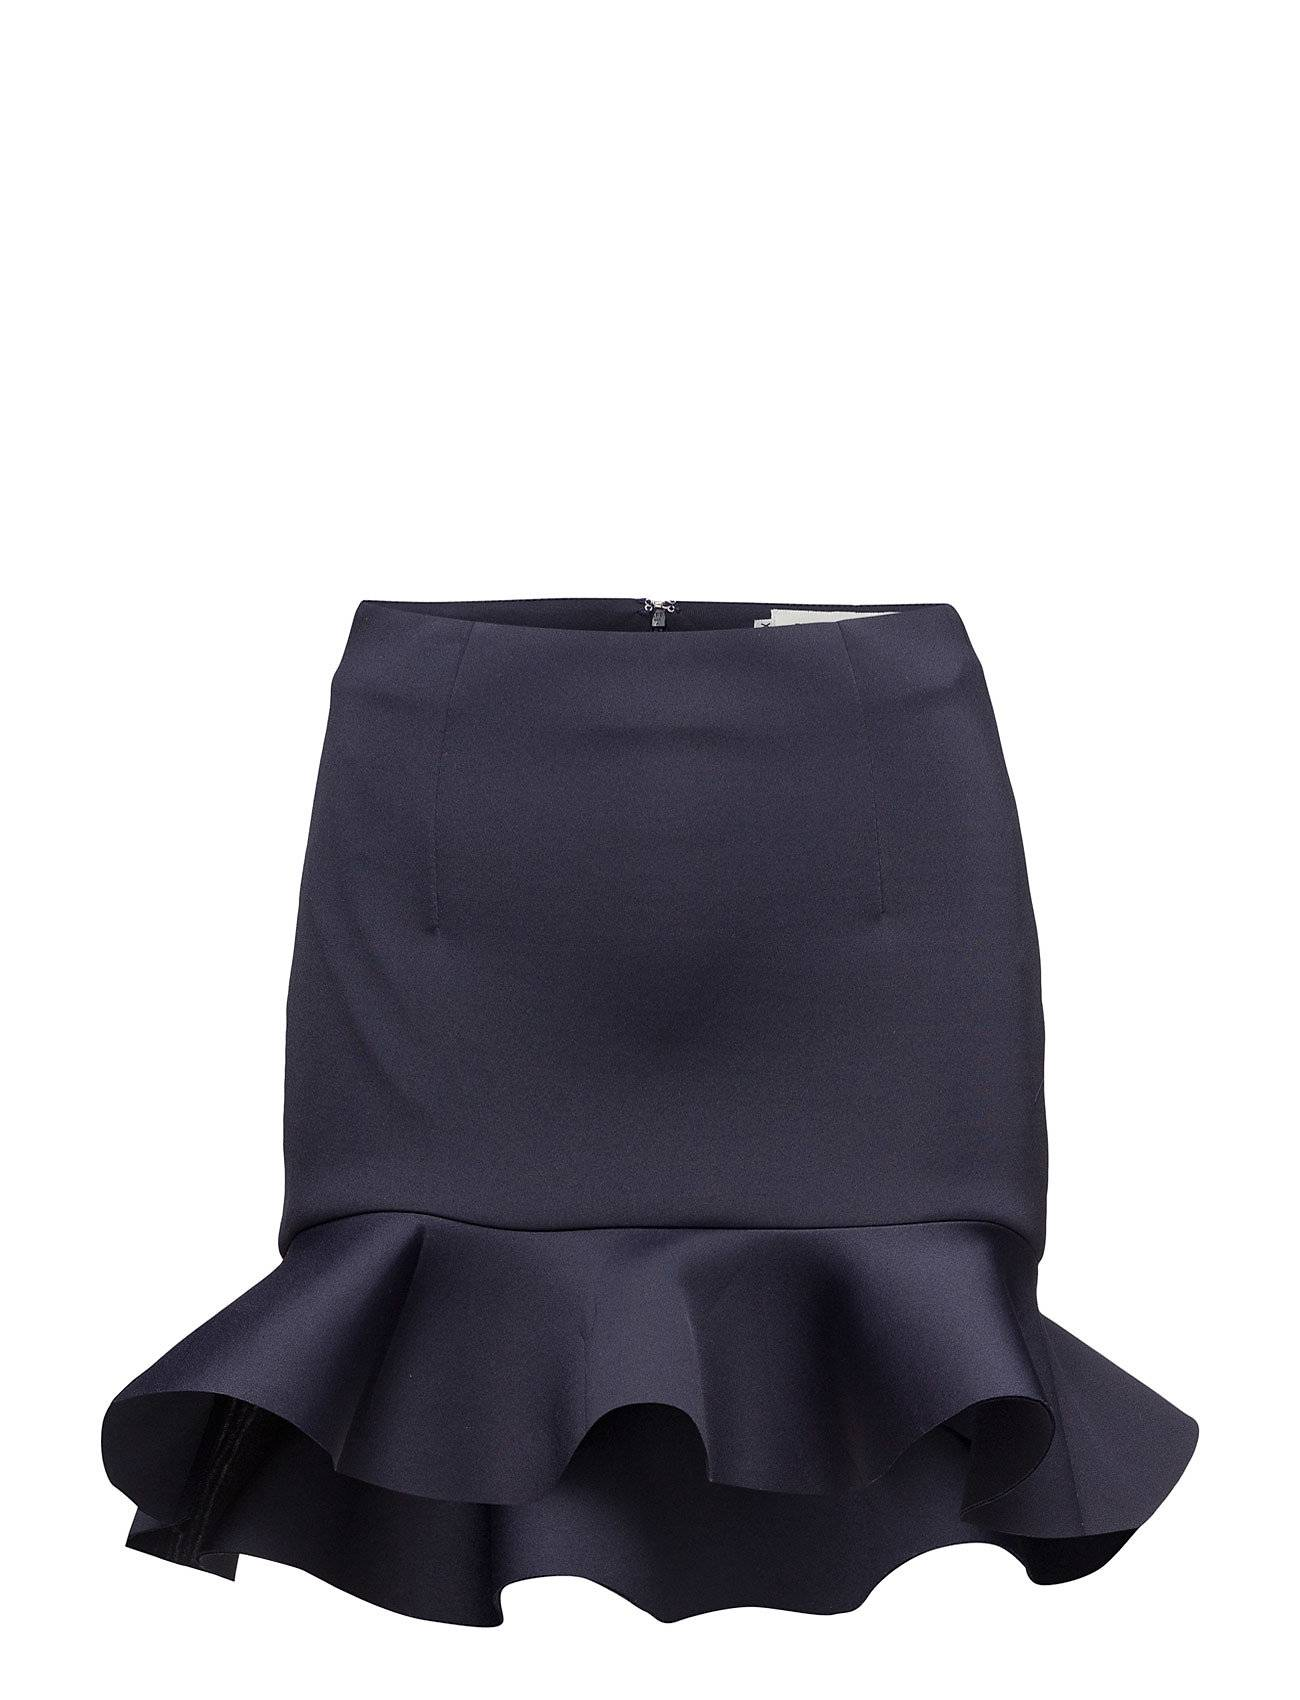 By Malina Bini Skirt